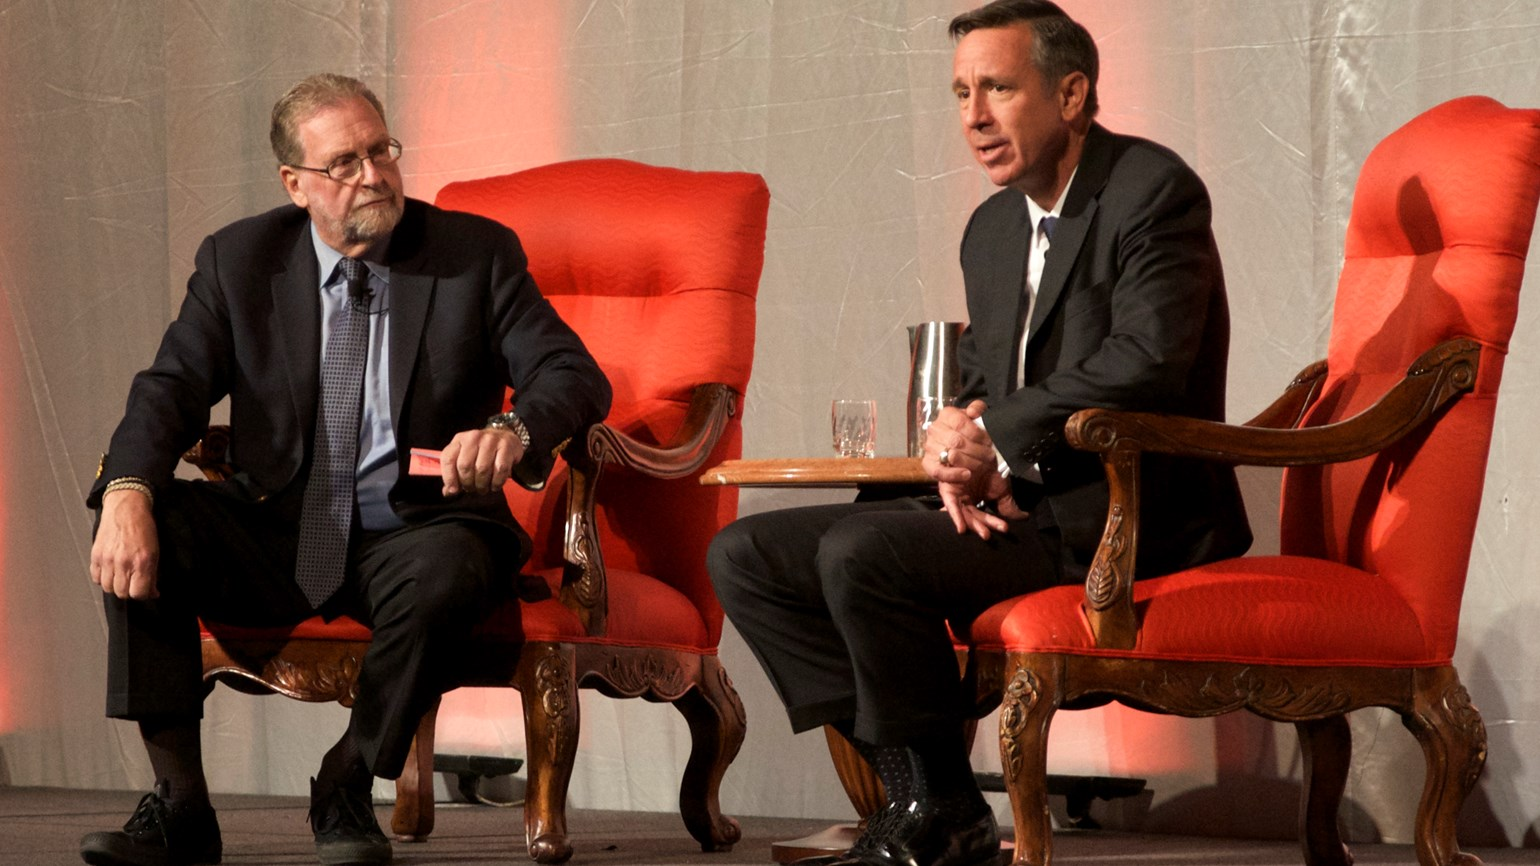 Marriott CEO says agent relationships 'have to be tended'